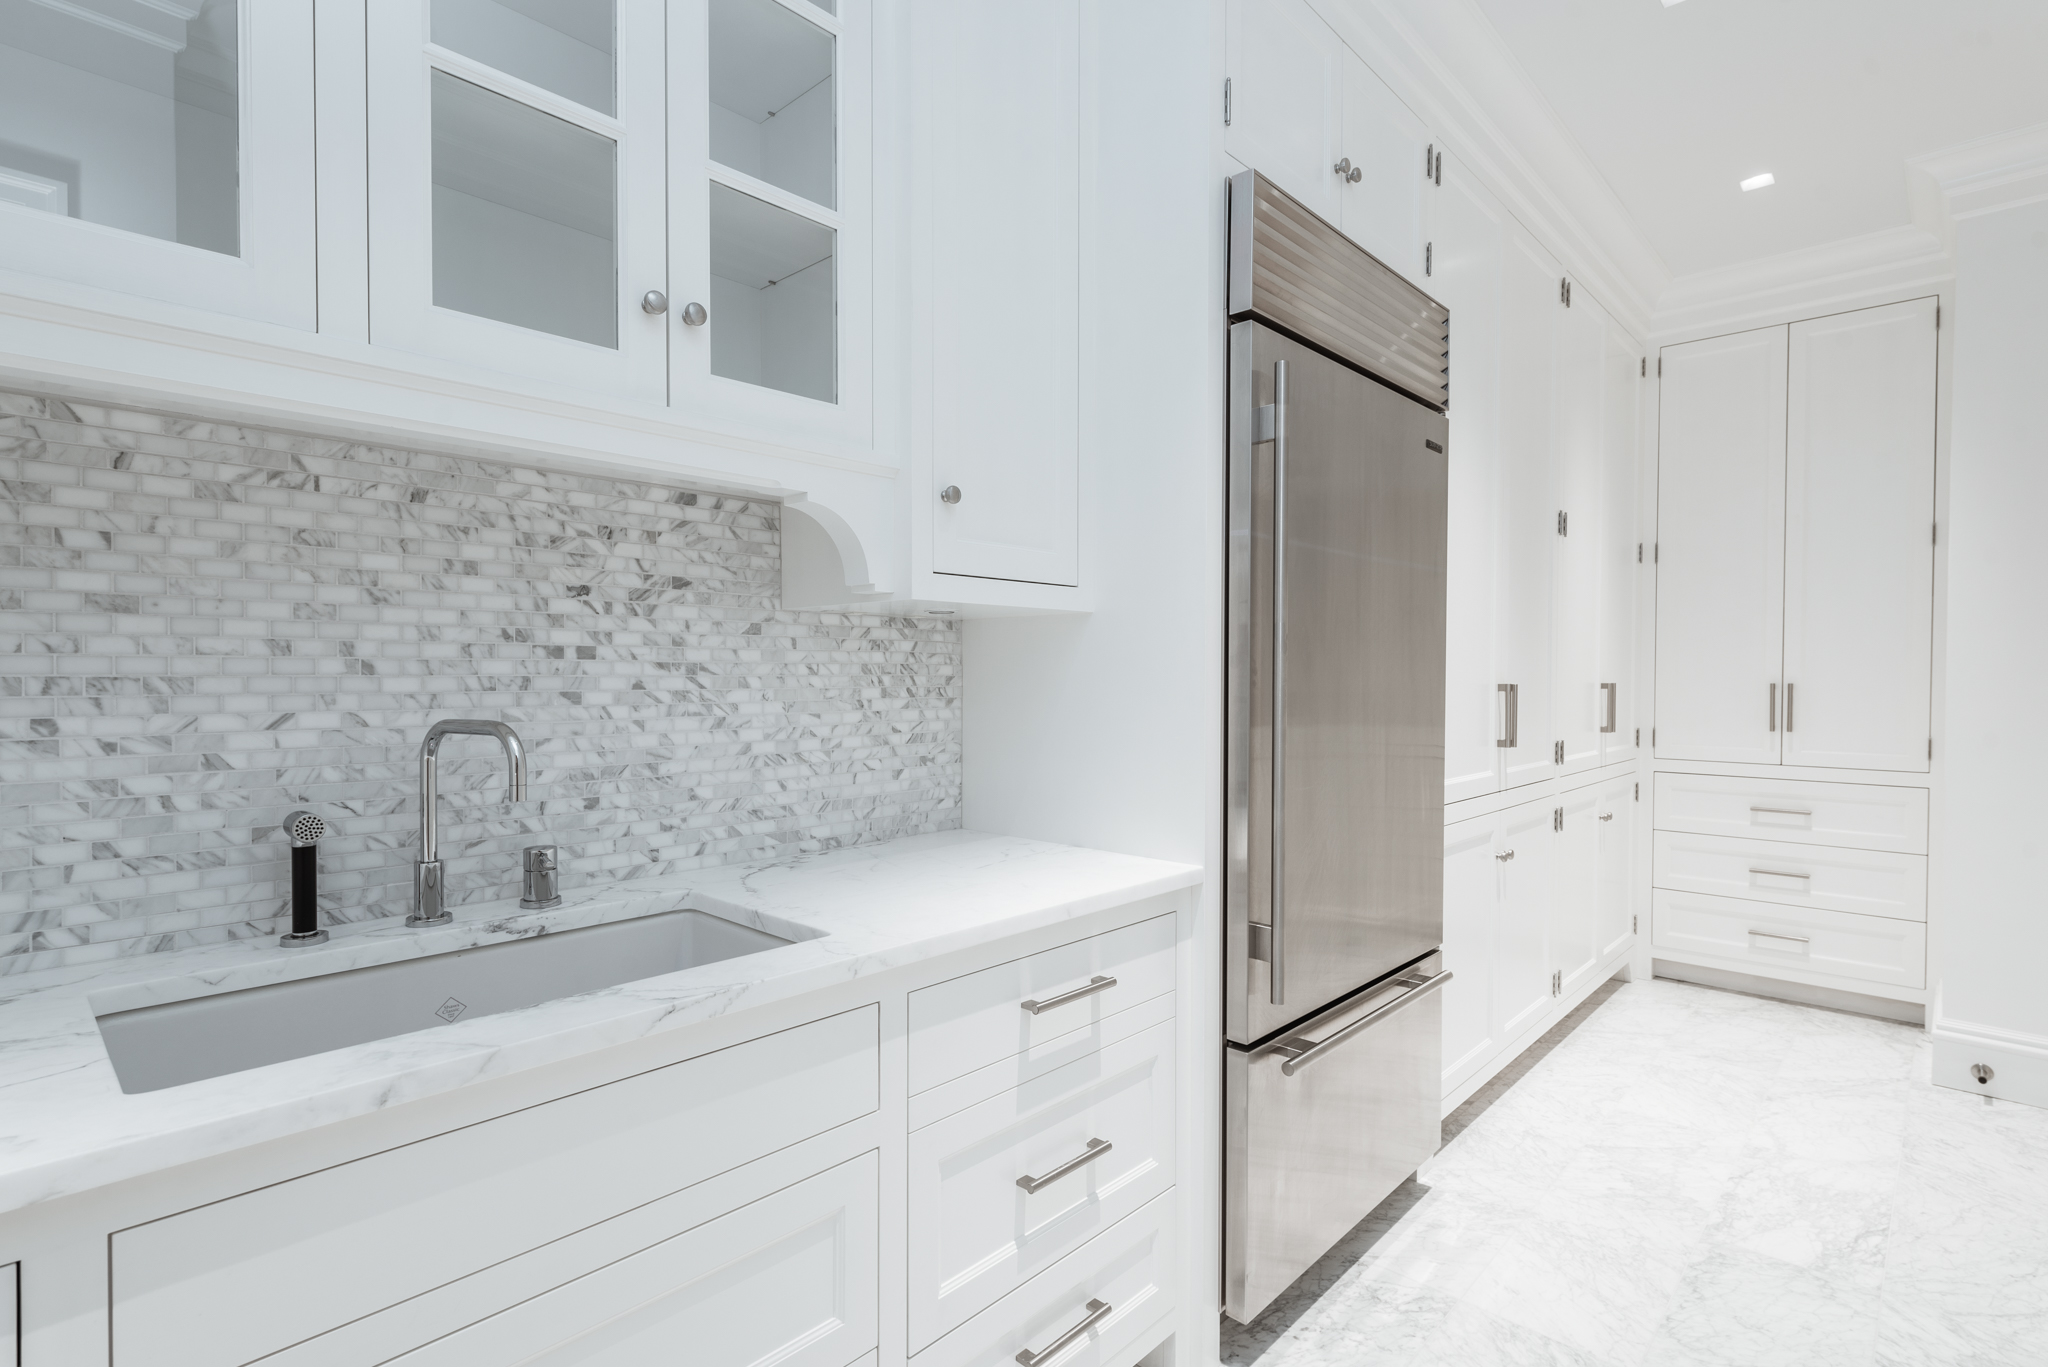 PANTRY:  After gutting some small, unused storage and pantry closets we were able to open up this walk-in Pantry off the kitchen which incorporates a wet-bar along with storage cabinetry.